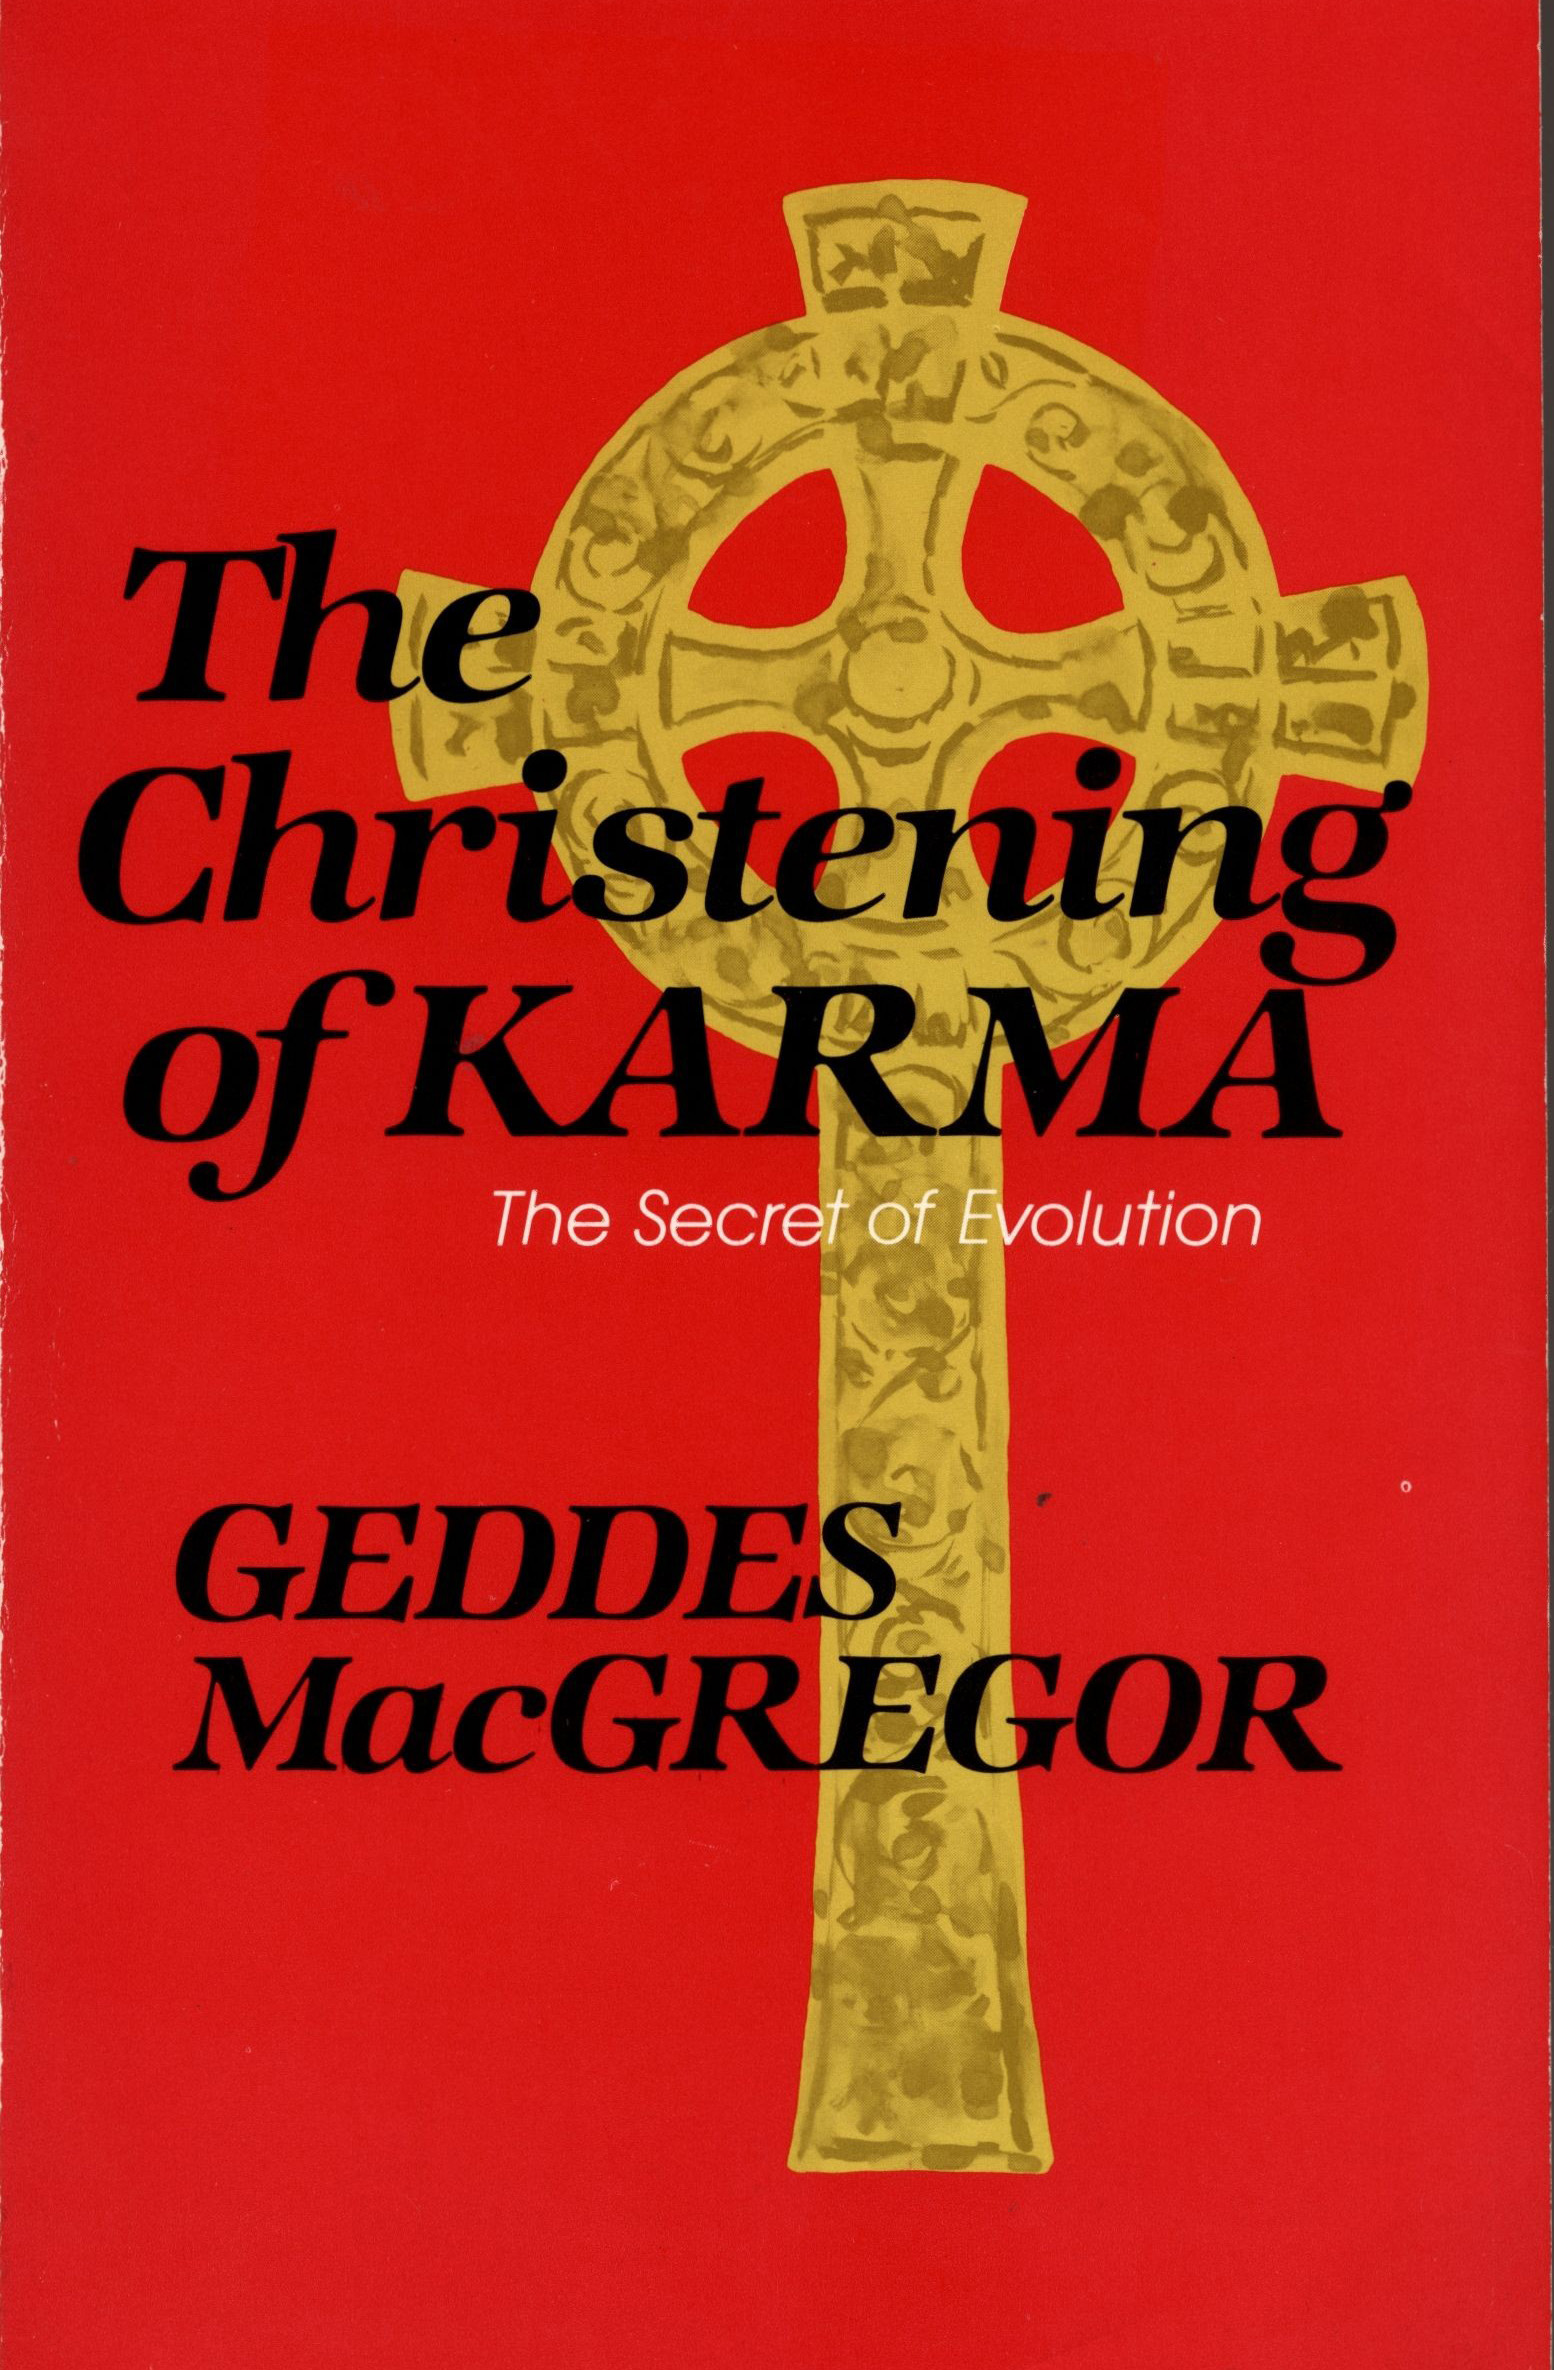 The Christening of Karma